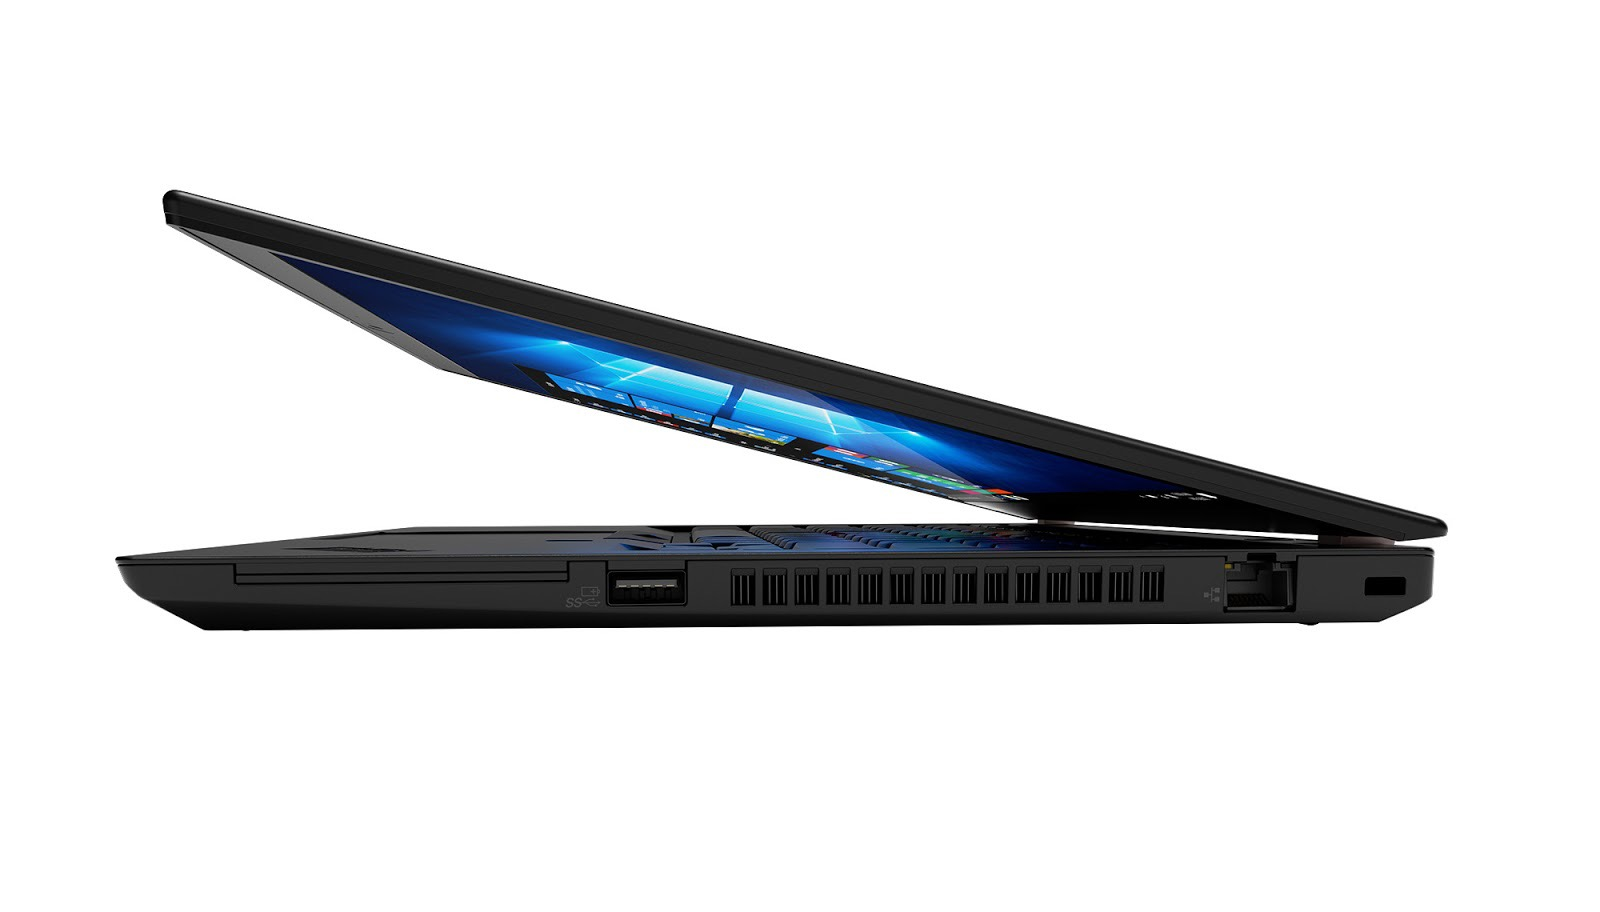 Фото 1. Ноутбук Lenovo ThinkPad T14 Gen 1 Black (20S00008RT)